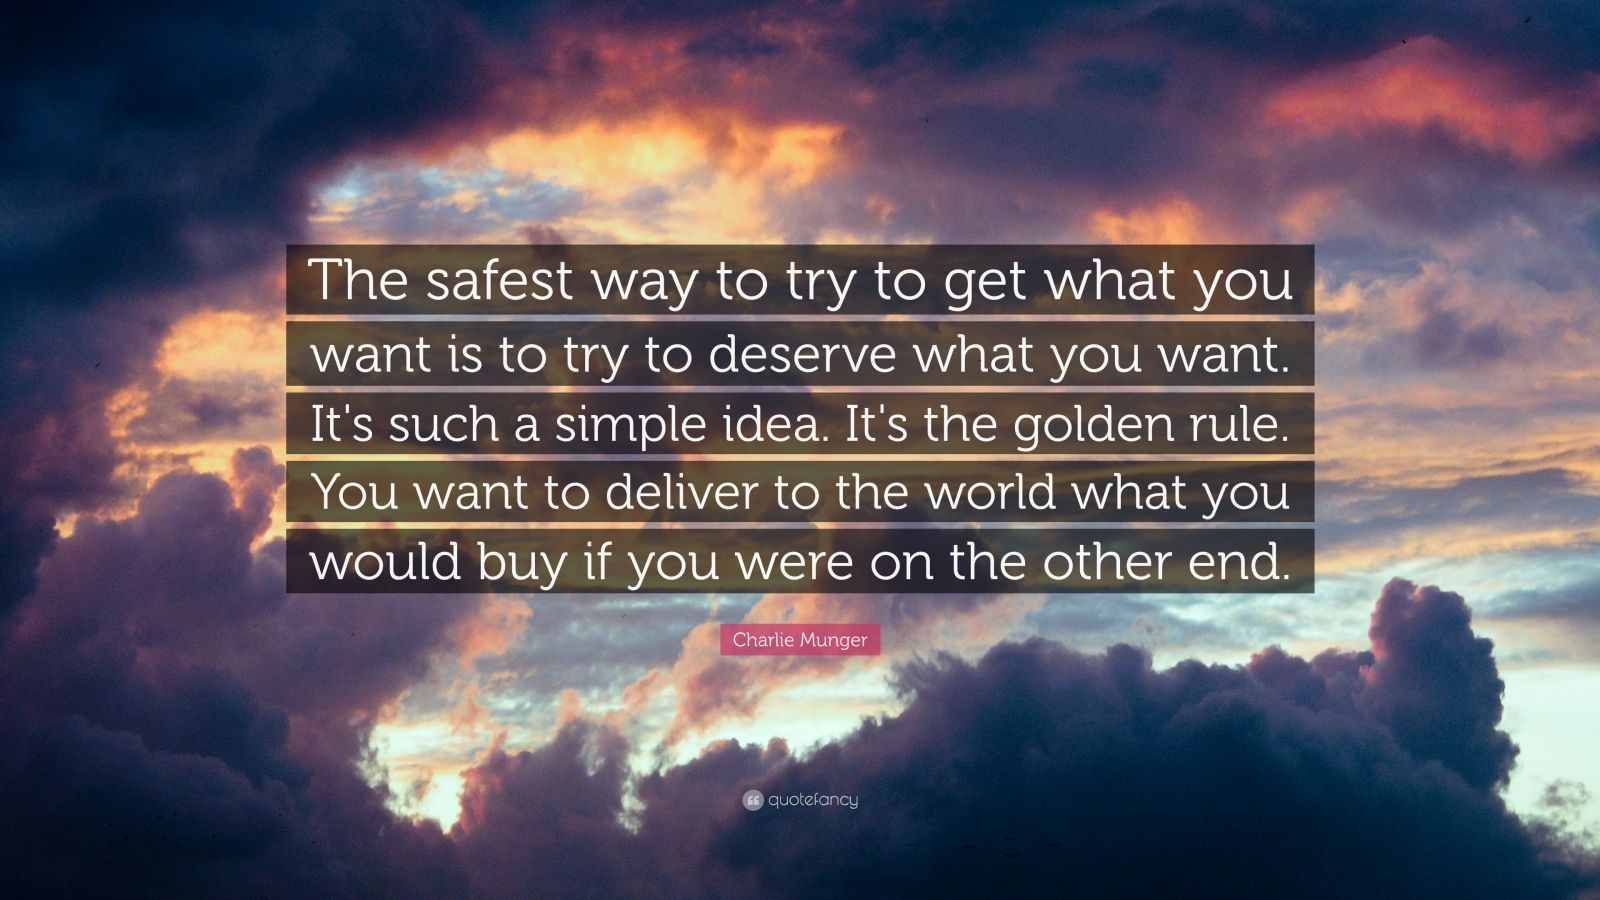 Elon Musk Quotes Wallpaper Charlie Munger Quote The Safest Way To Try To Get What